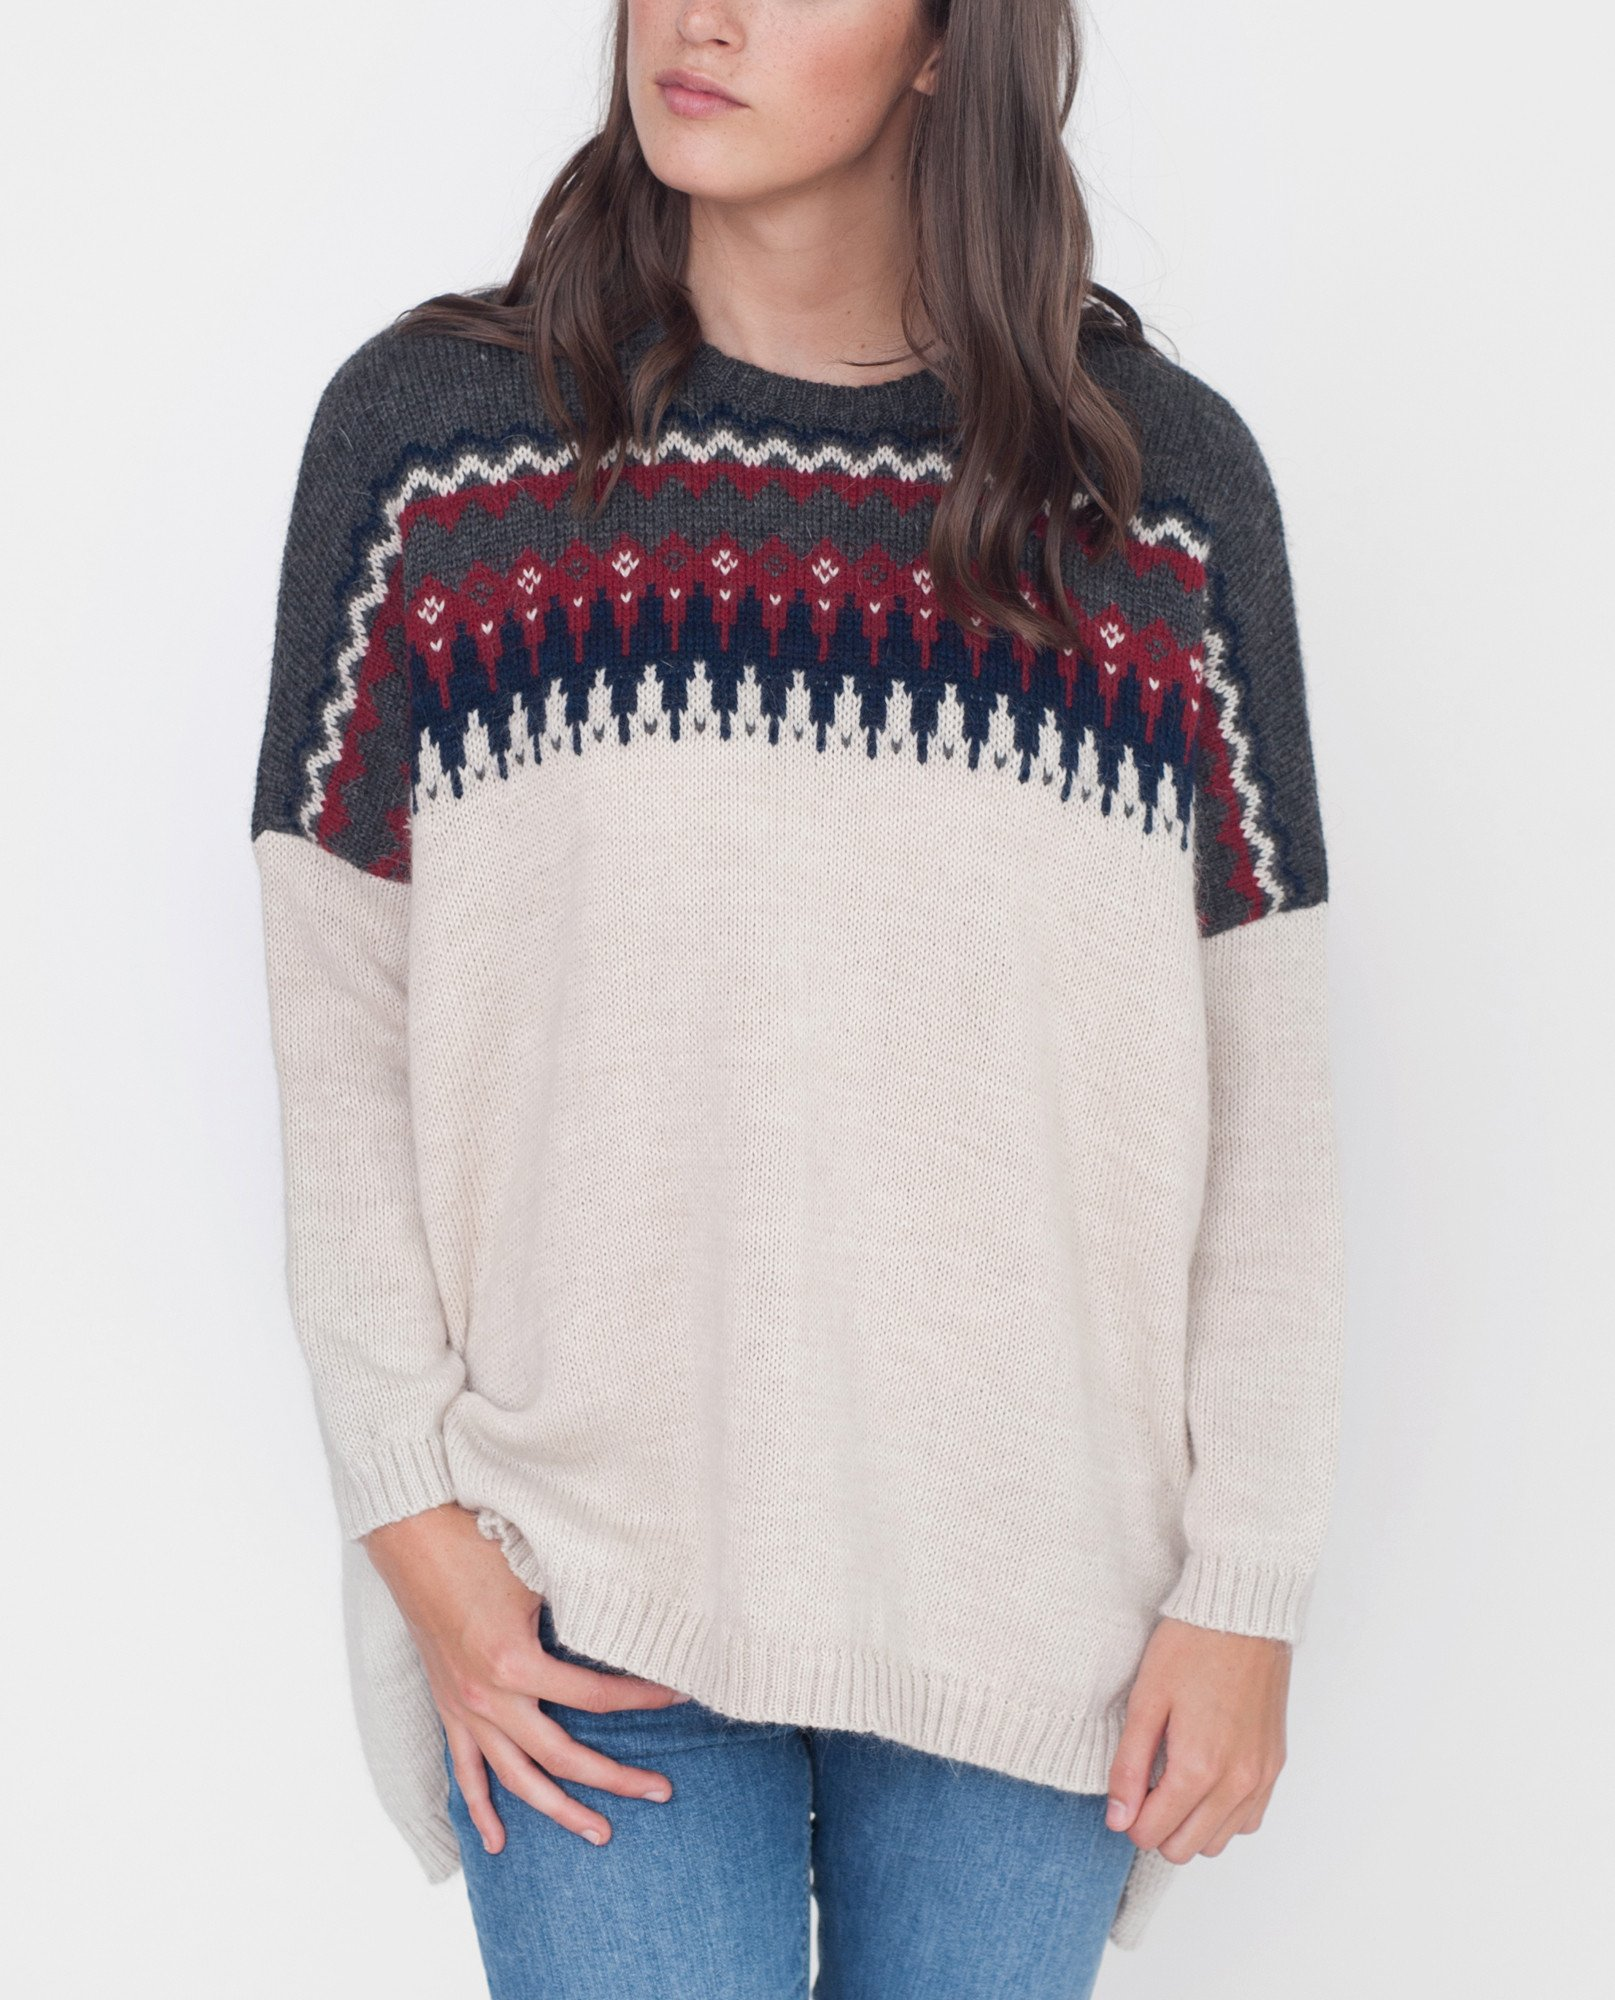 GIGI Mohair Knitted Jumper from Beaumont Organic